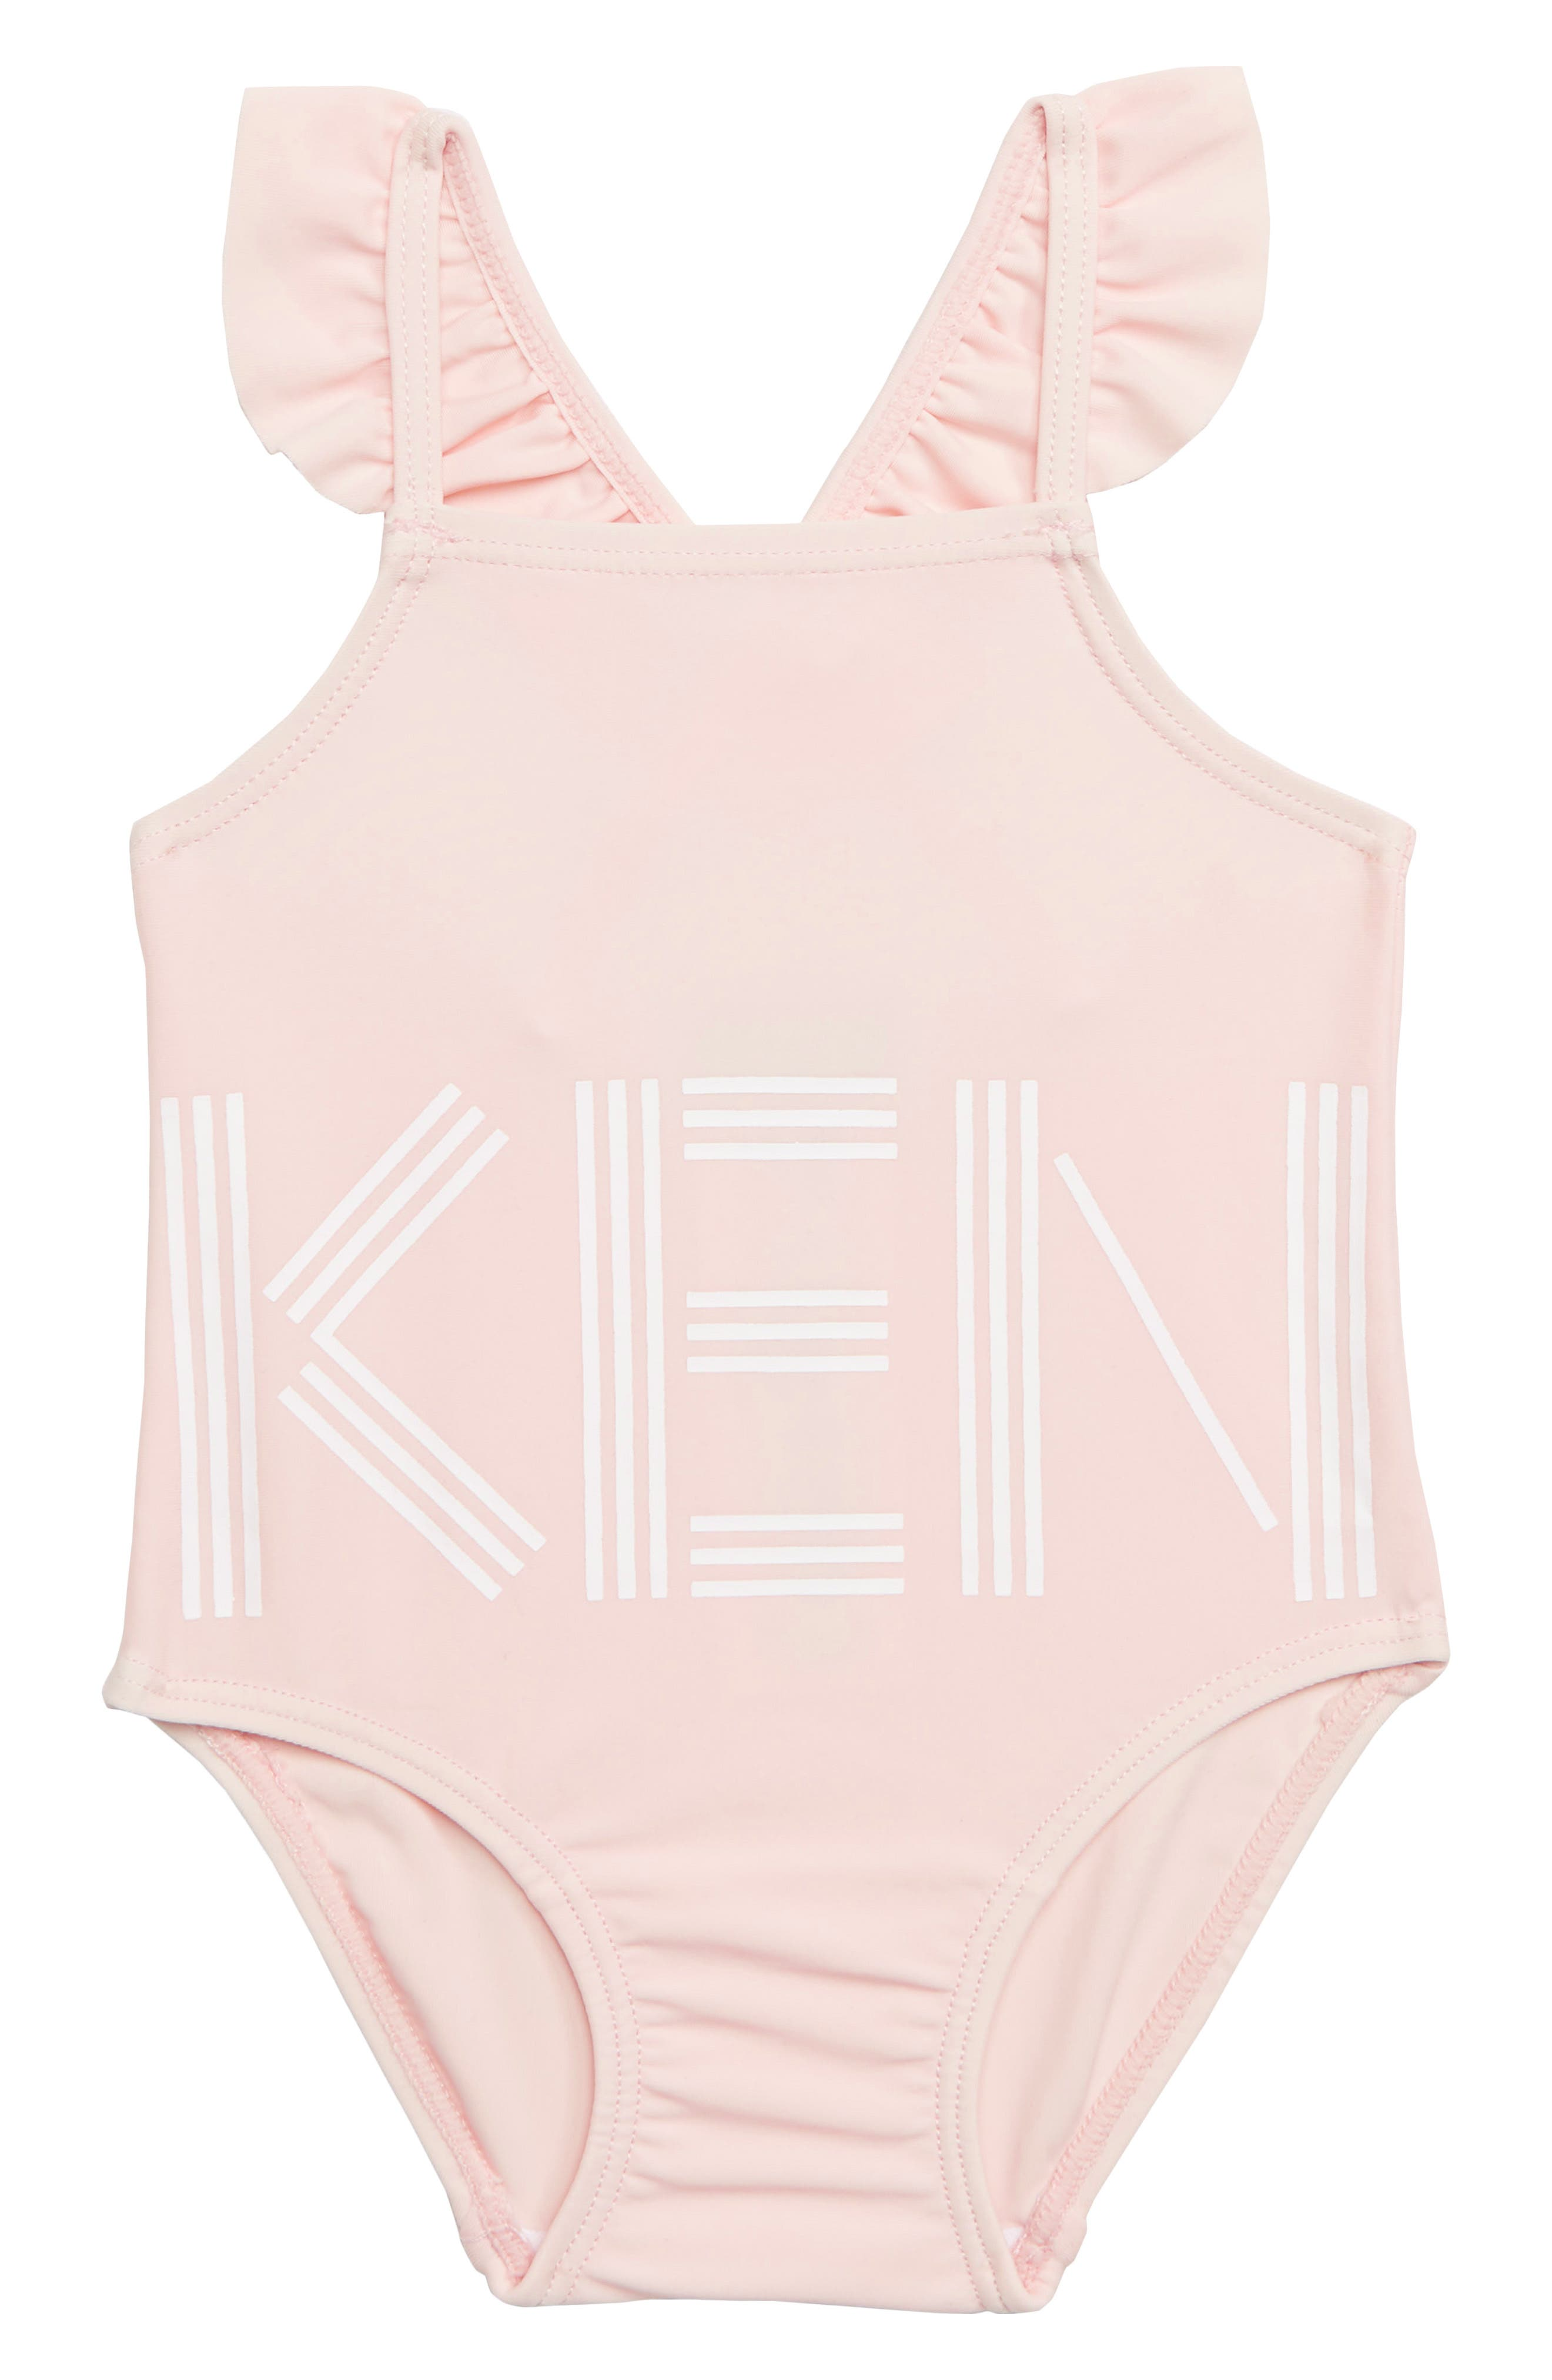 KENZO, Logo One-Piece Swimsuit, Main thumbnail 1, color, LIGHT PINK